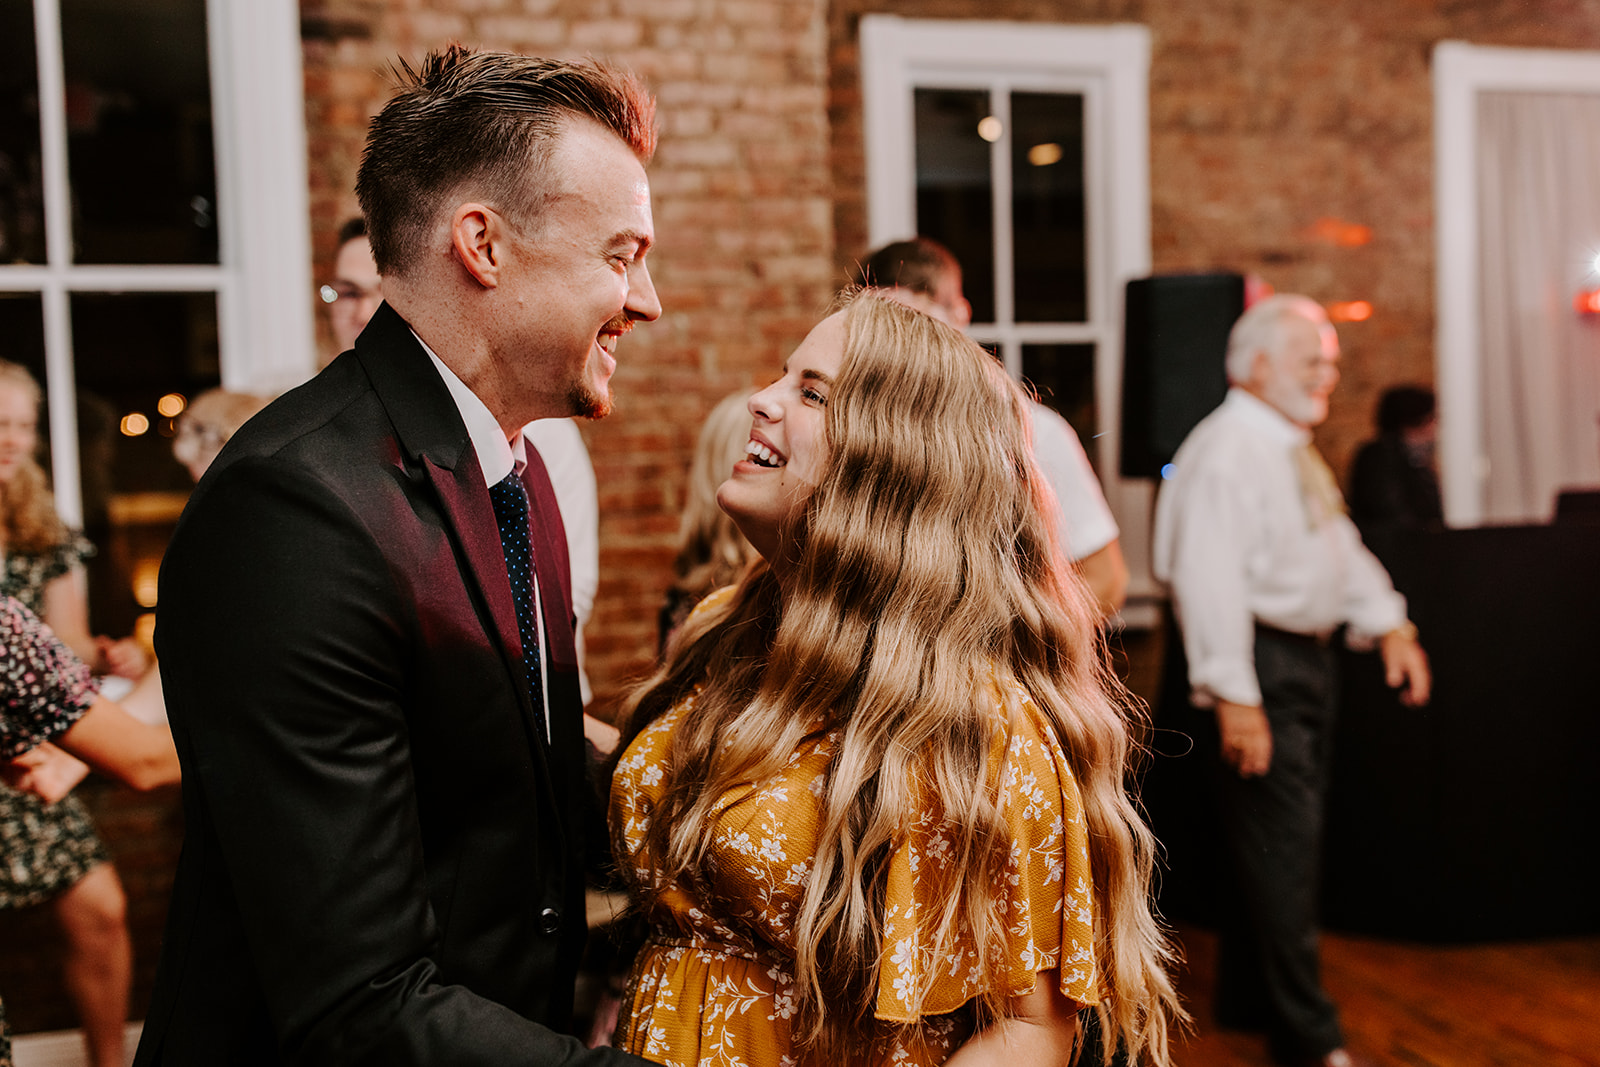 Dancing wedding photography | Nashville Bride Guide